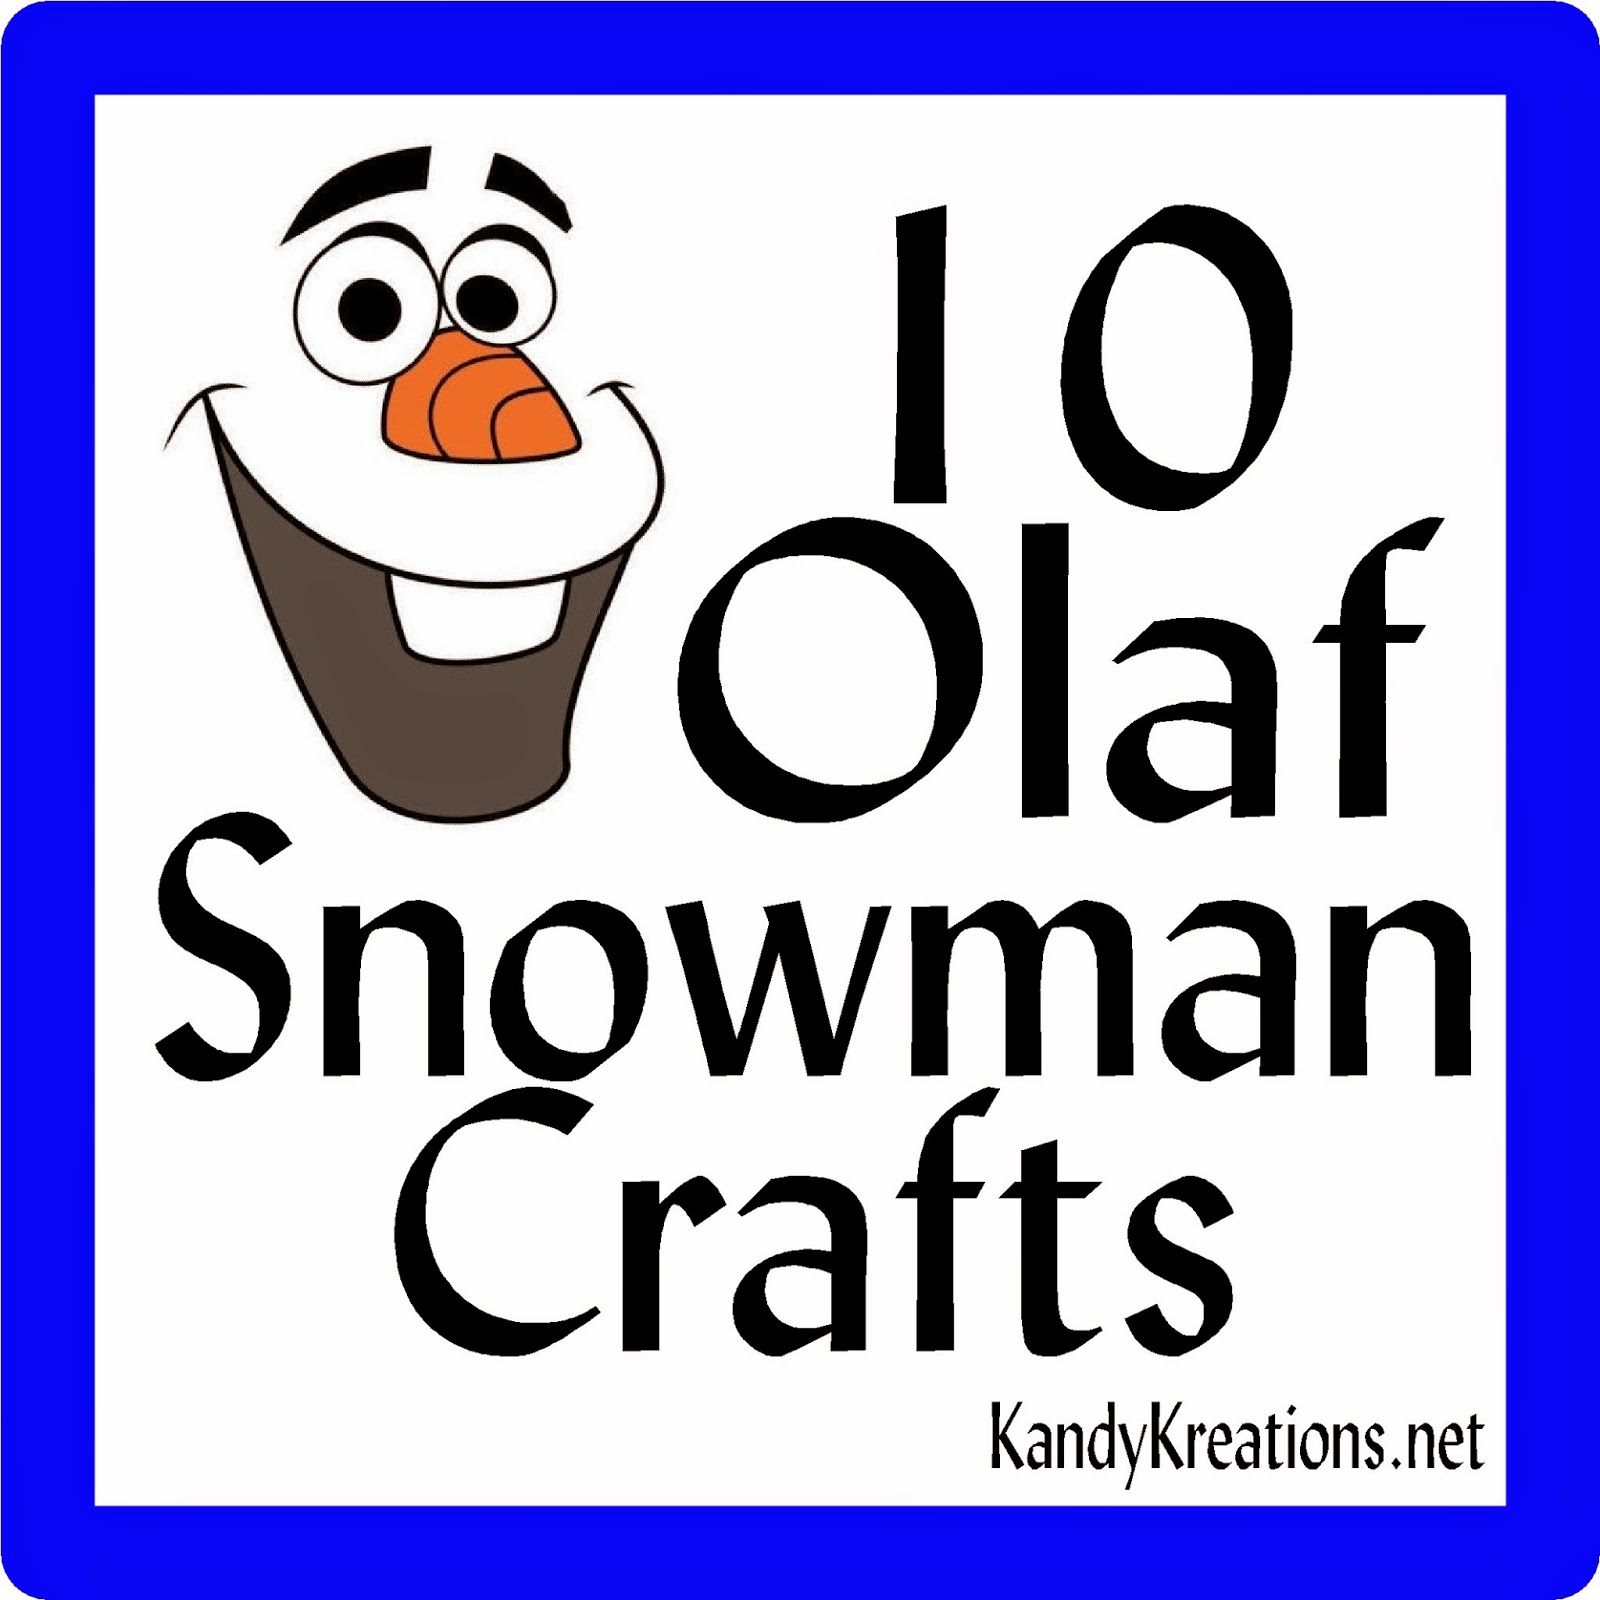 10 Olaf the Snowman Crafts